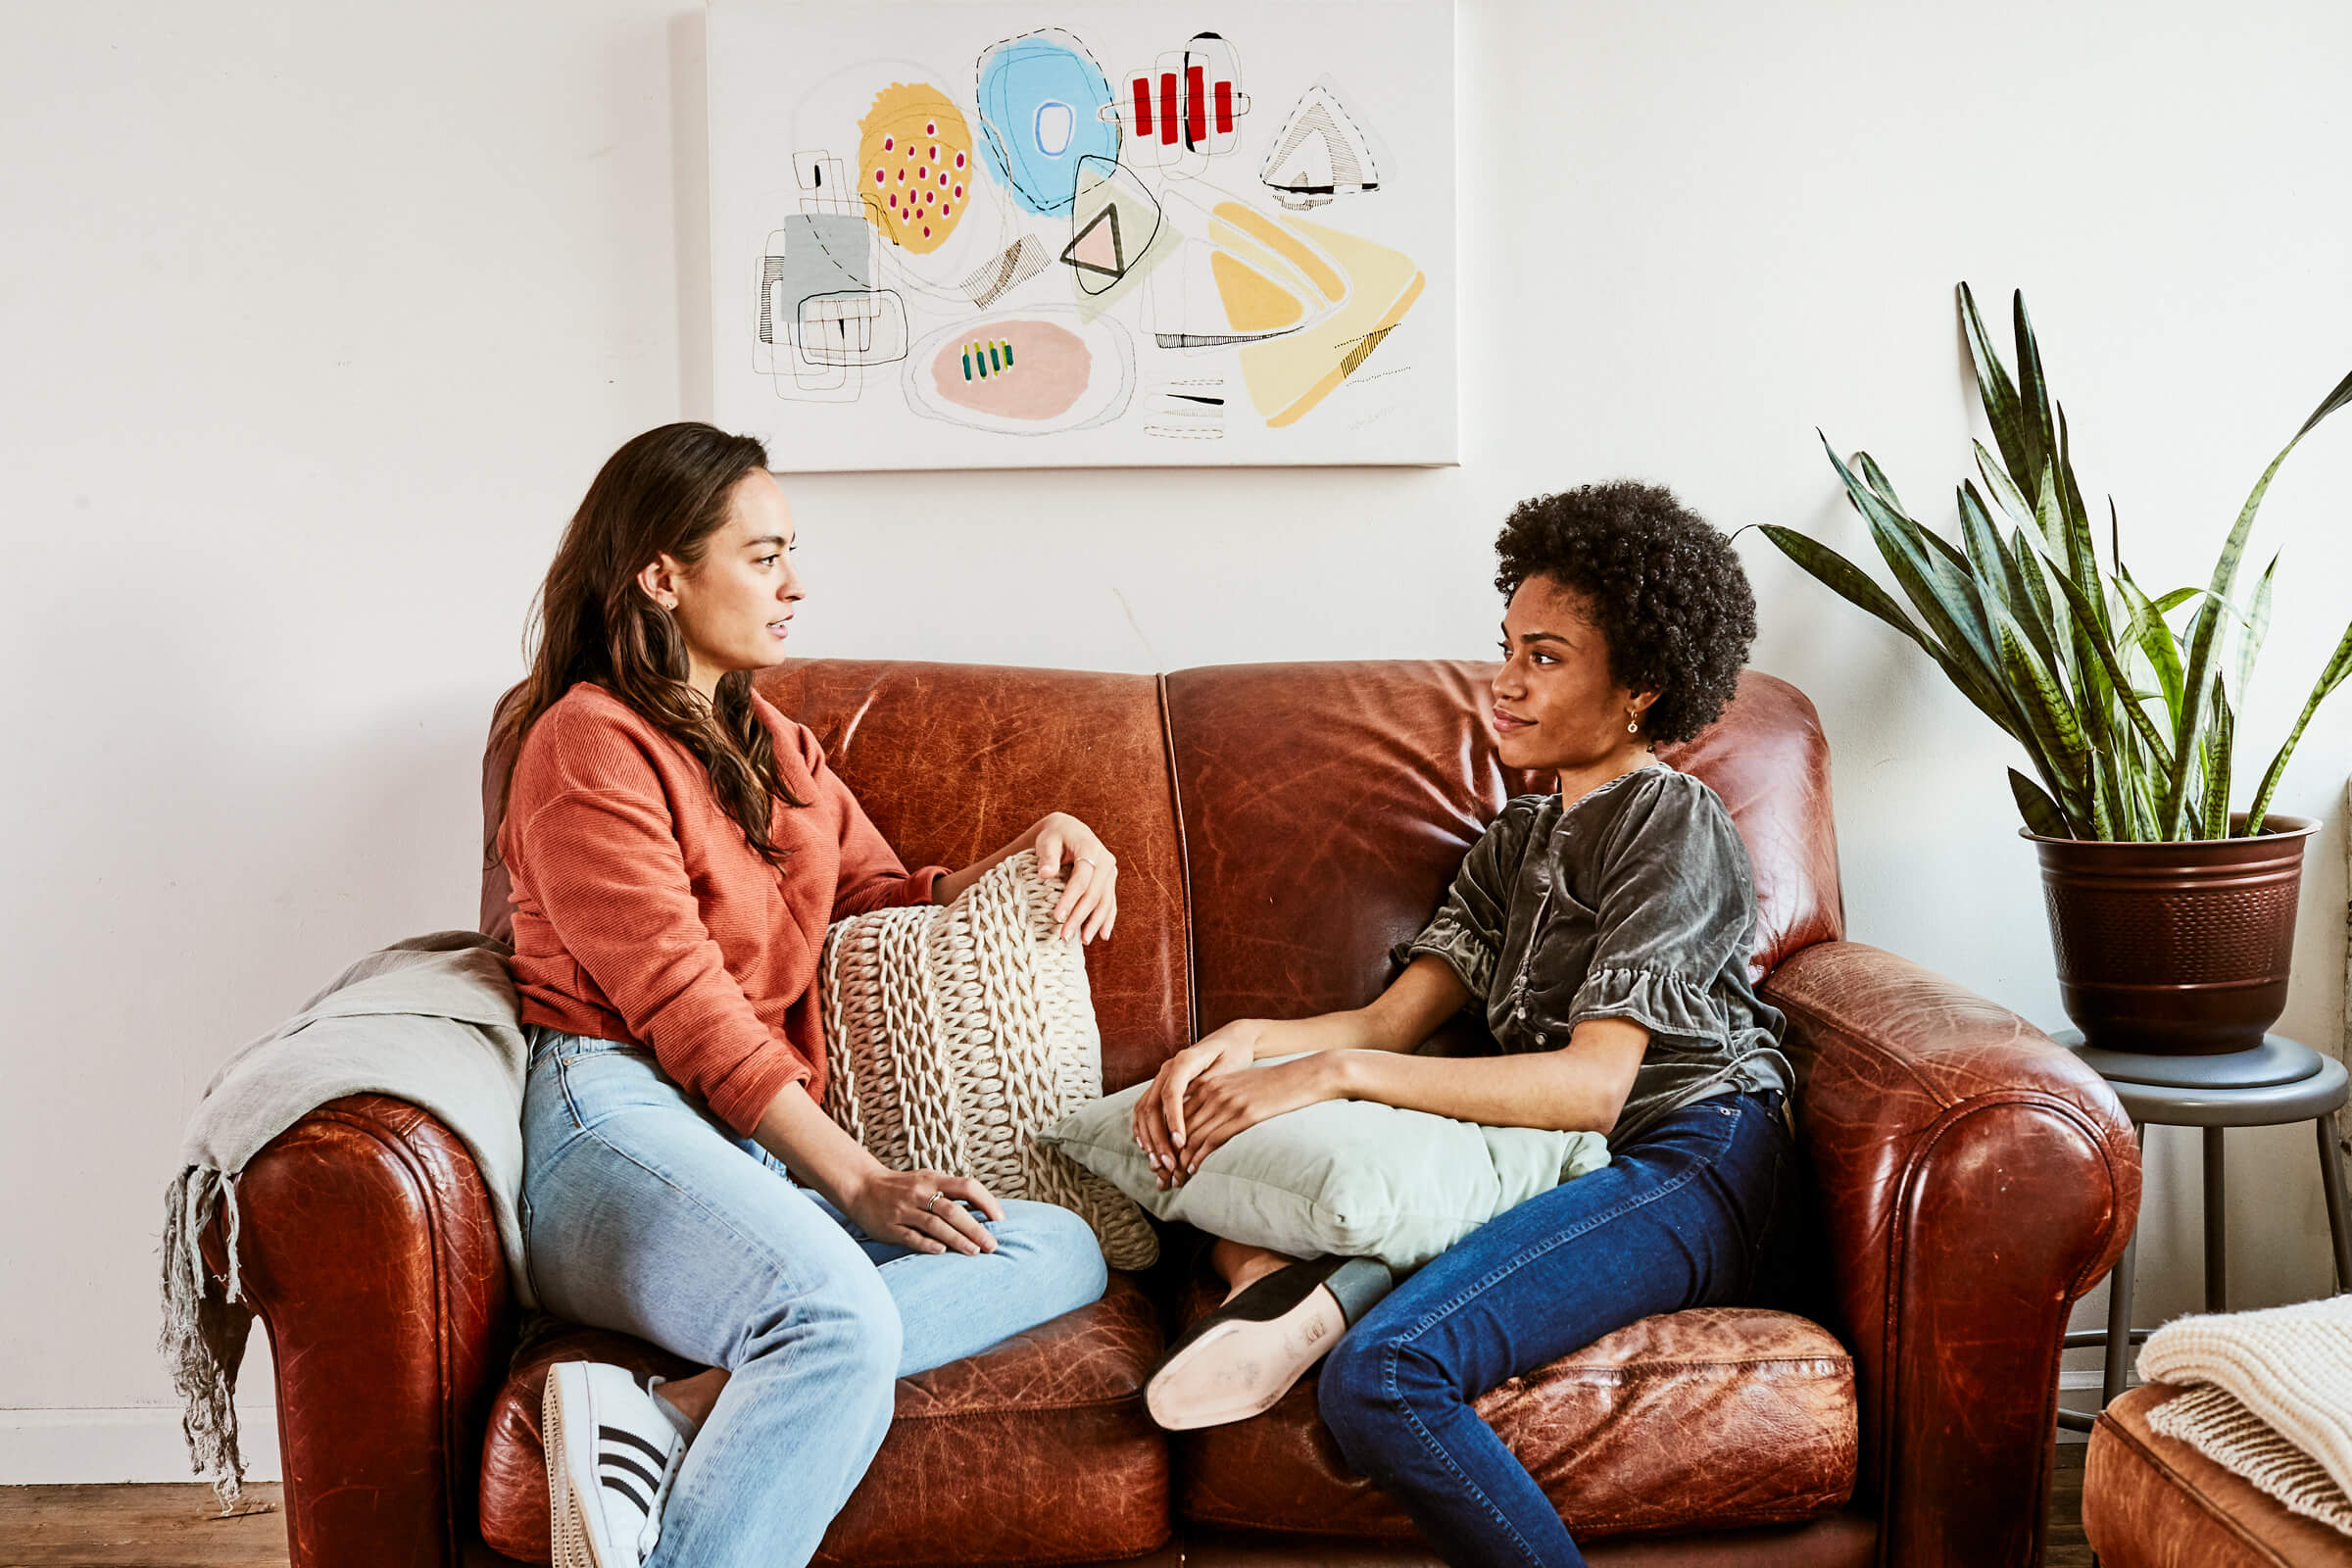 Two women sitting on a leather sofa and chatting.